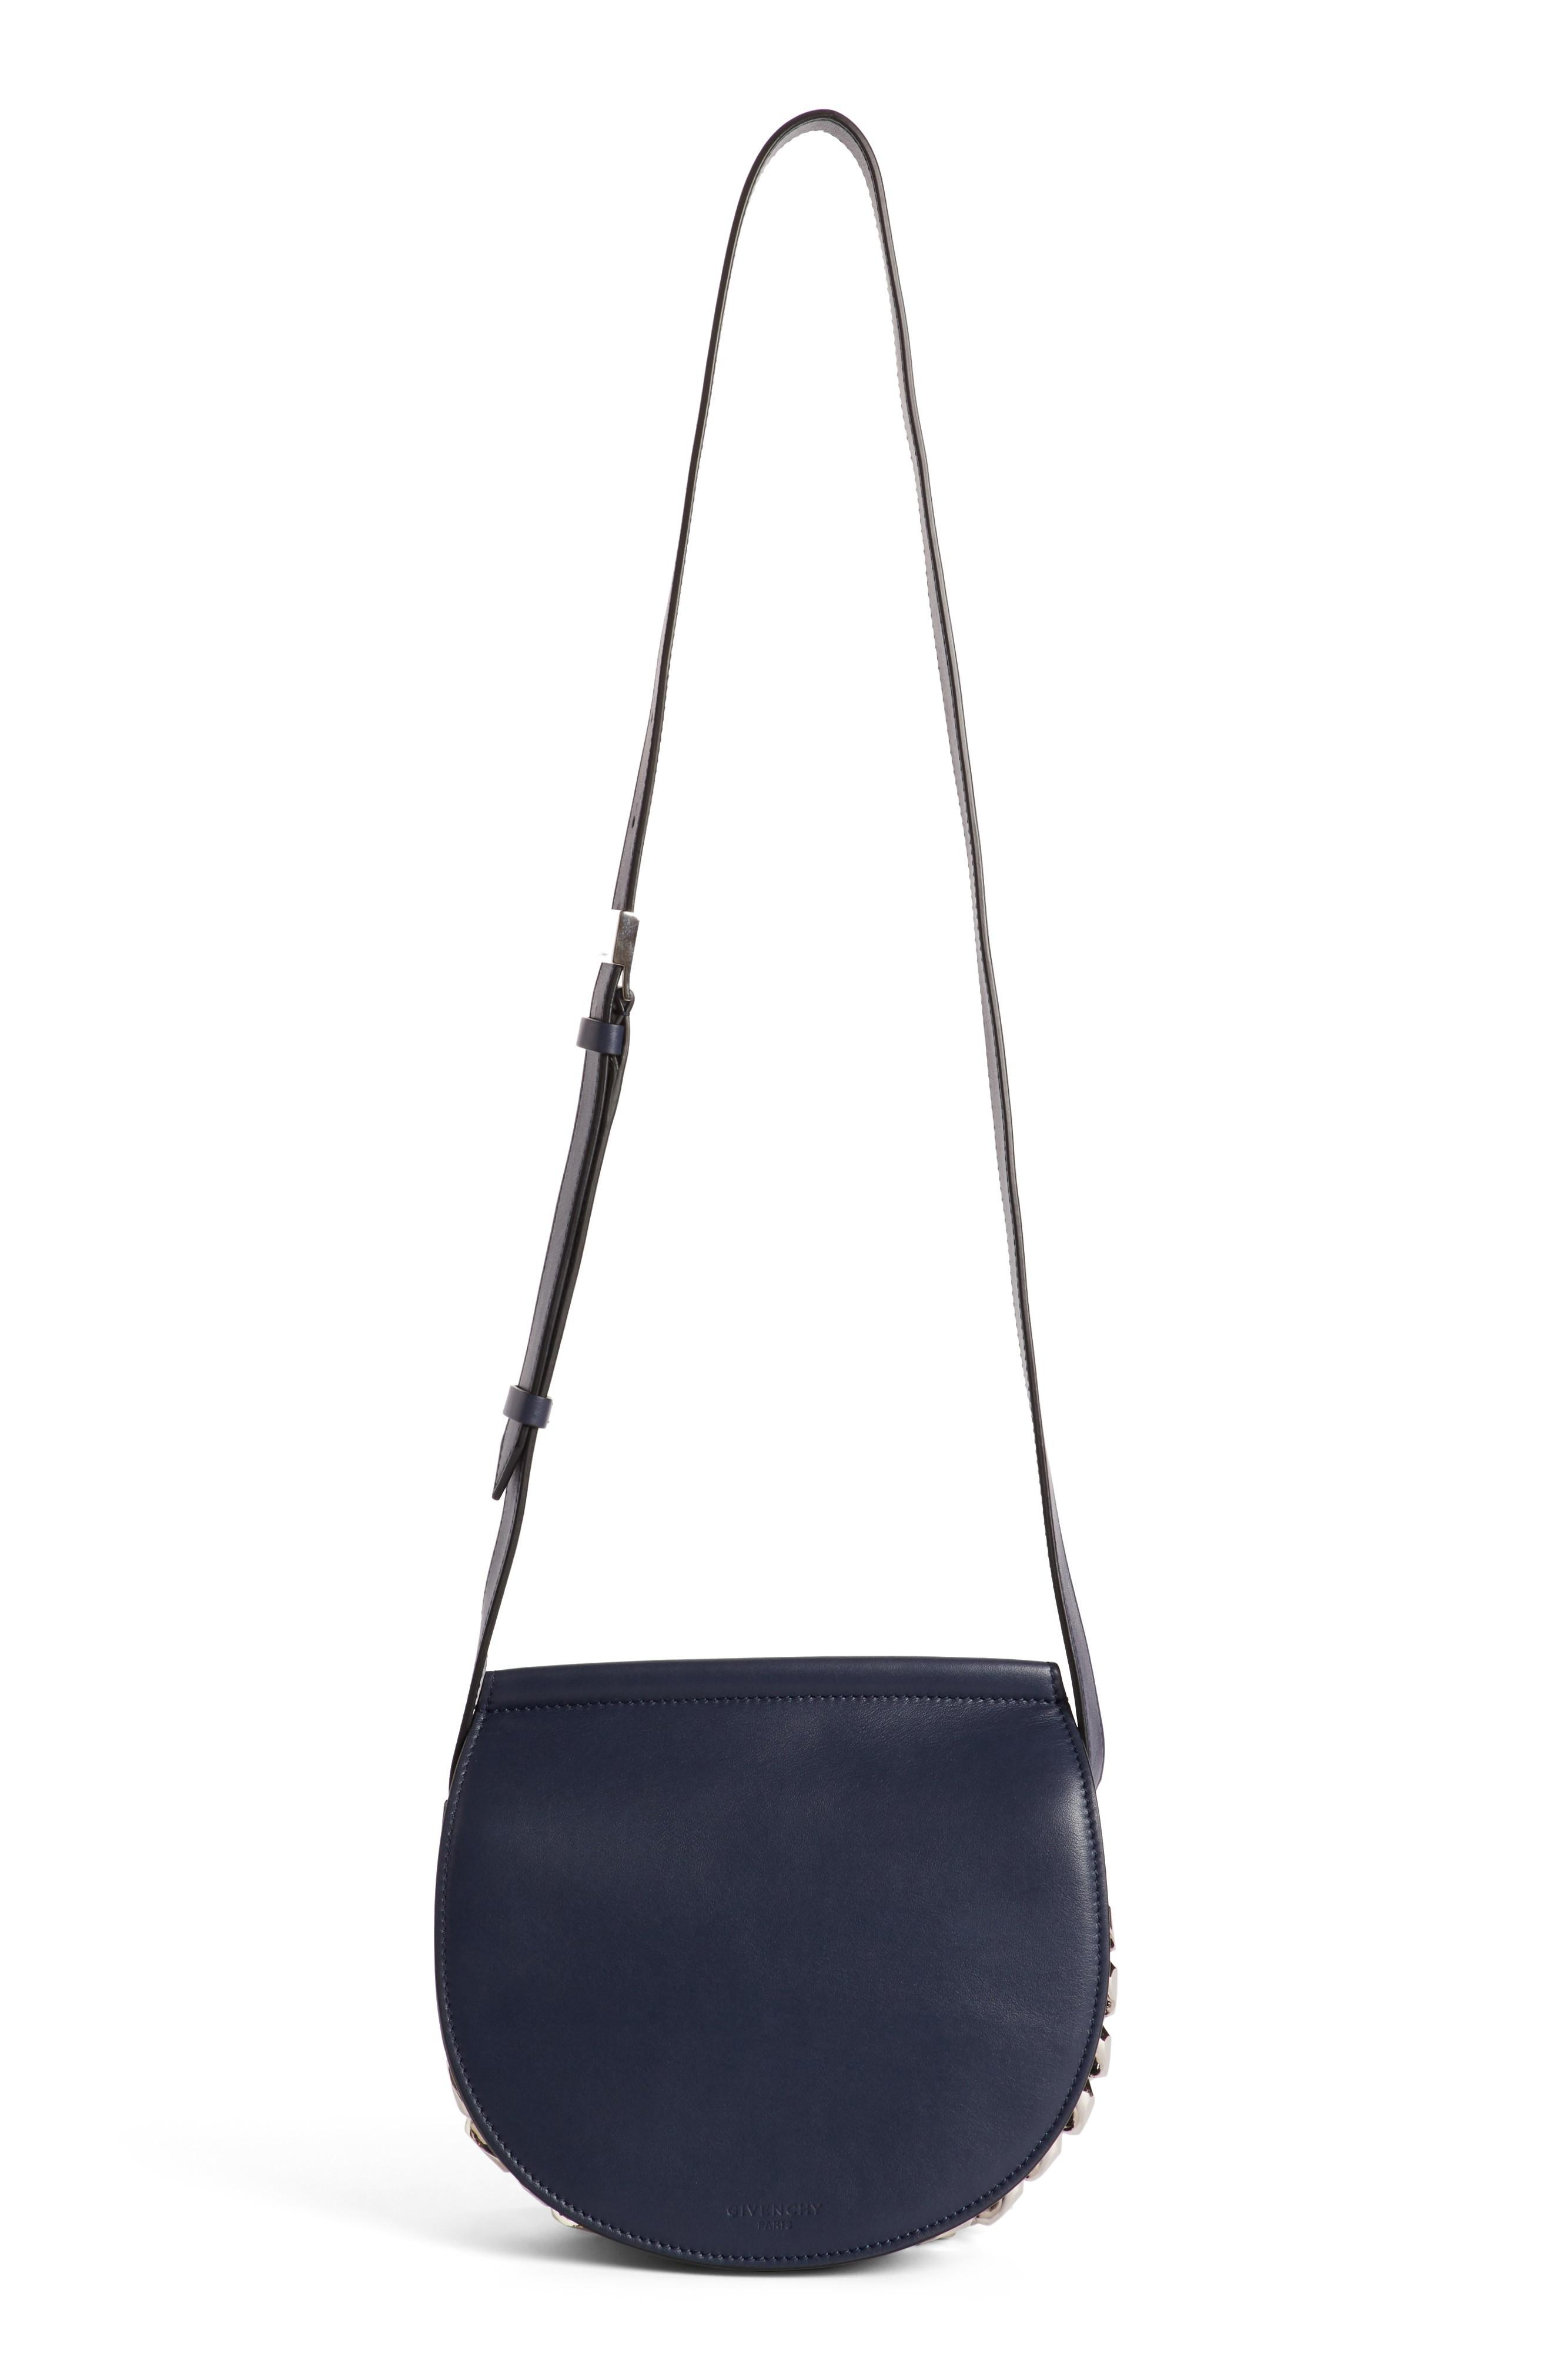 Givenchy Mini Infinity Calfskin Leather Saddle Bag - Blue In Night Blue 47e573d05c67c